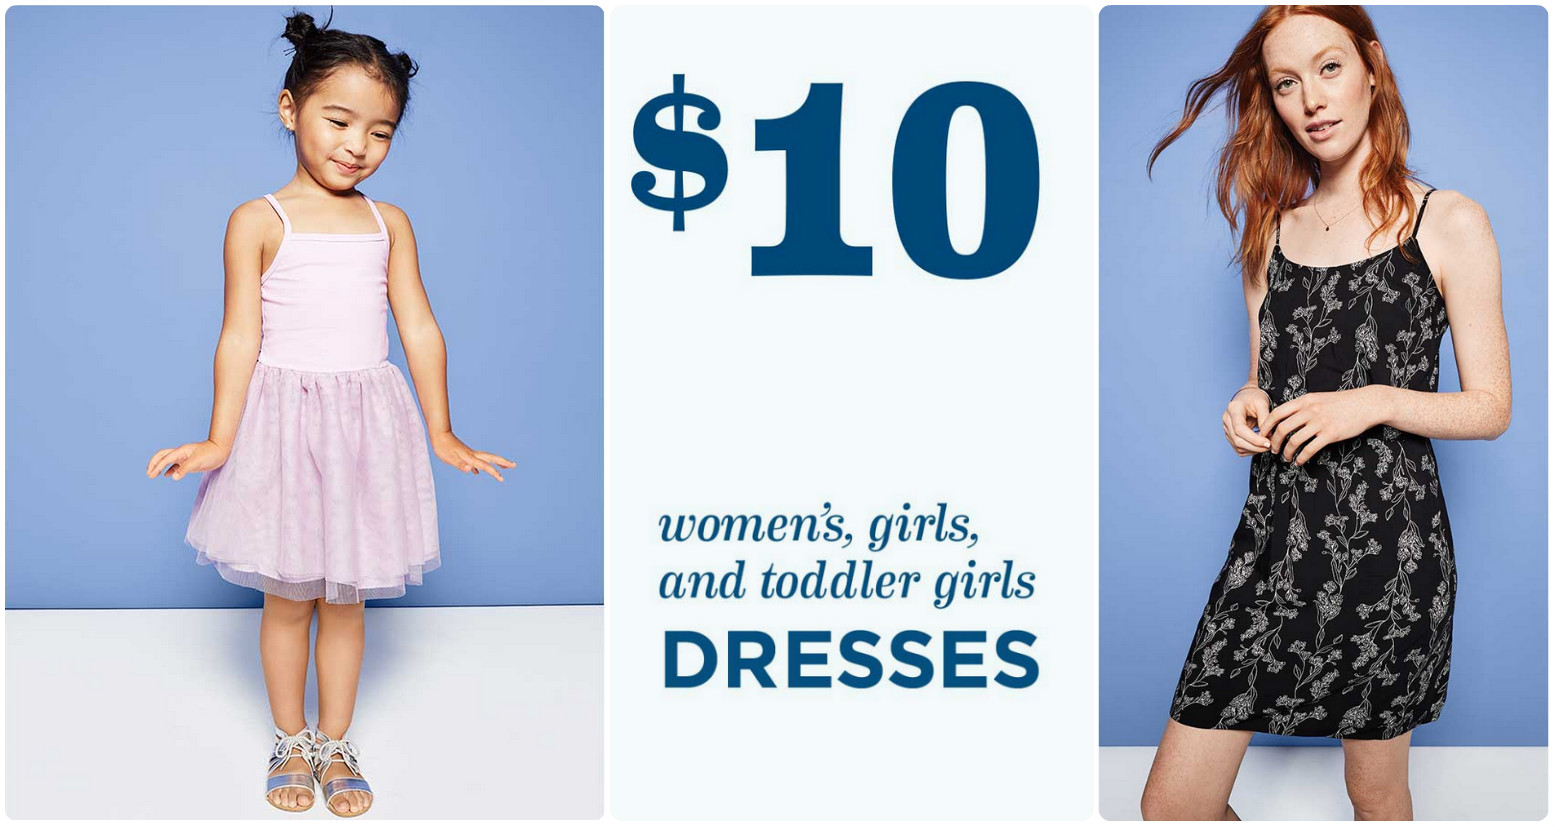 417a3276860e Old Navy: FIVE Women's & Girl's Dresses Only $35 + Earn $40 in Super Cash  (In-Store Only)